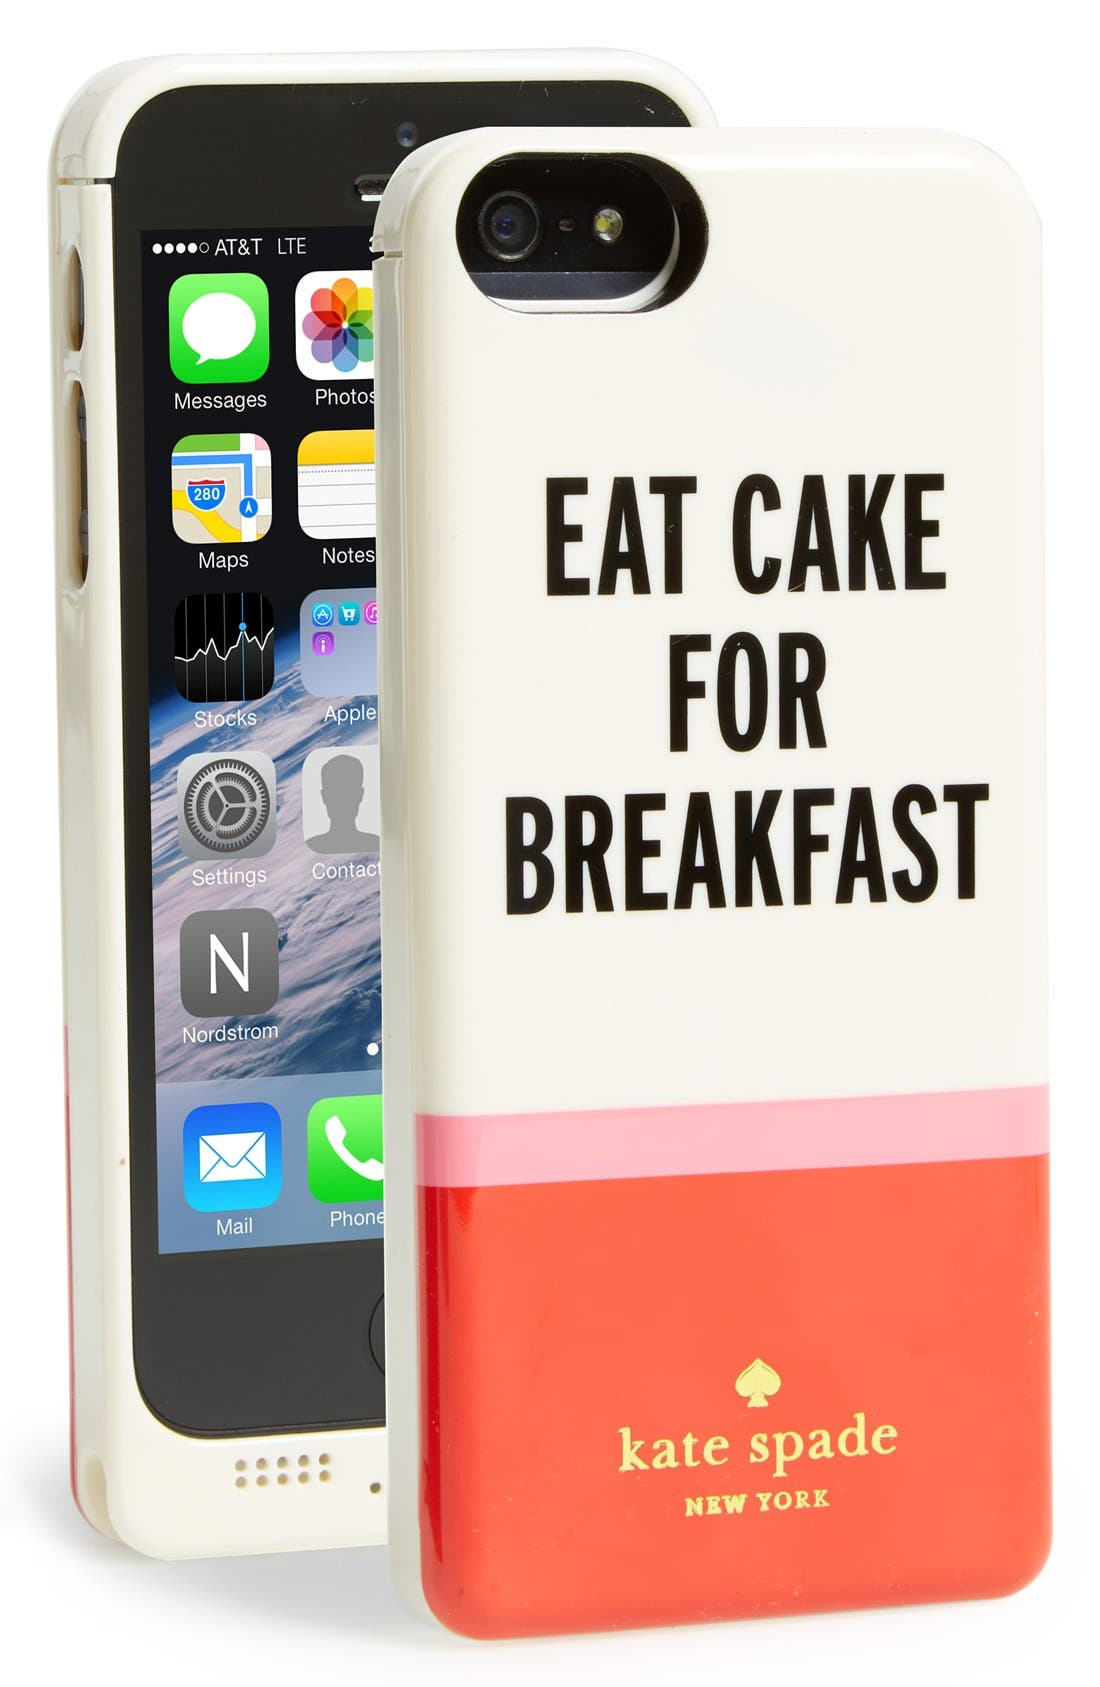 Alternate Image 1 Selected - kate spade new york 'eat cake for breakfast' iPhone 5 charger